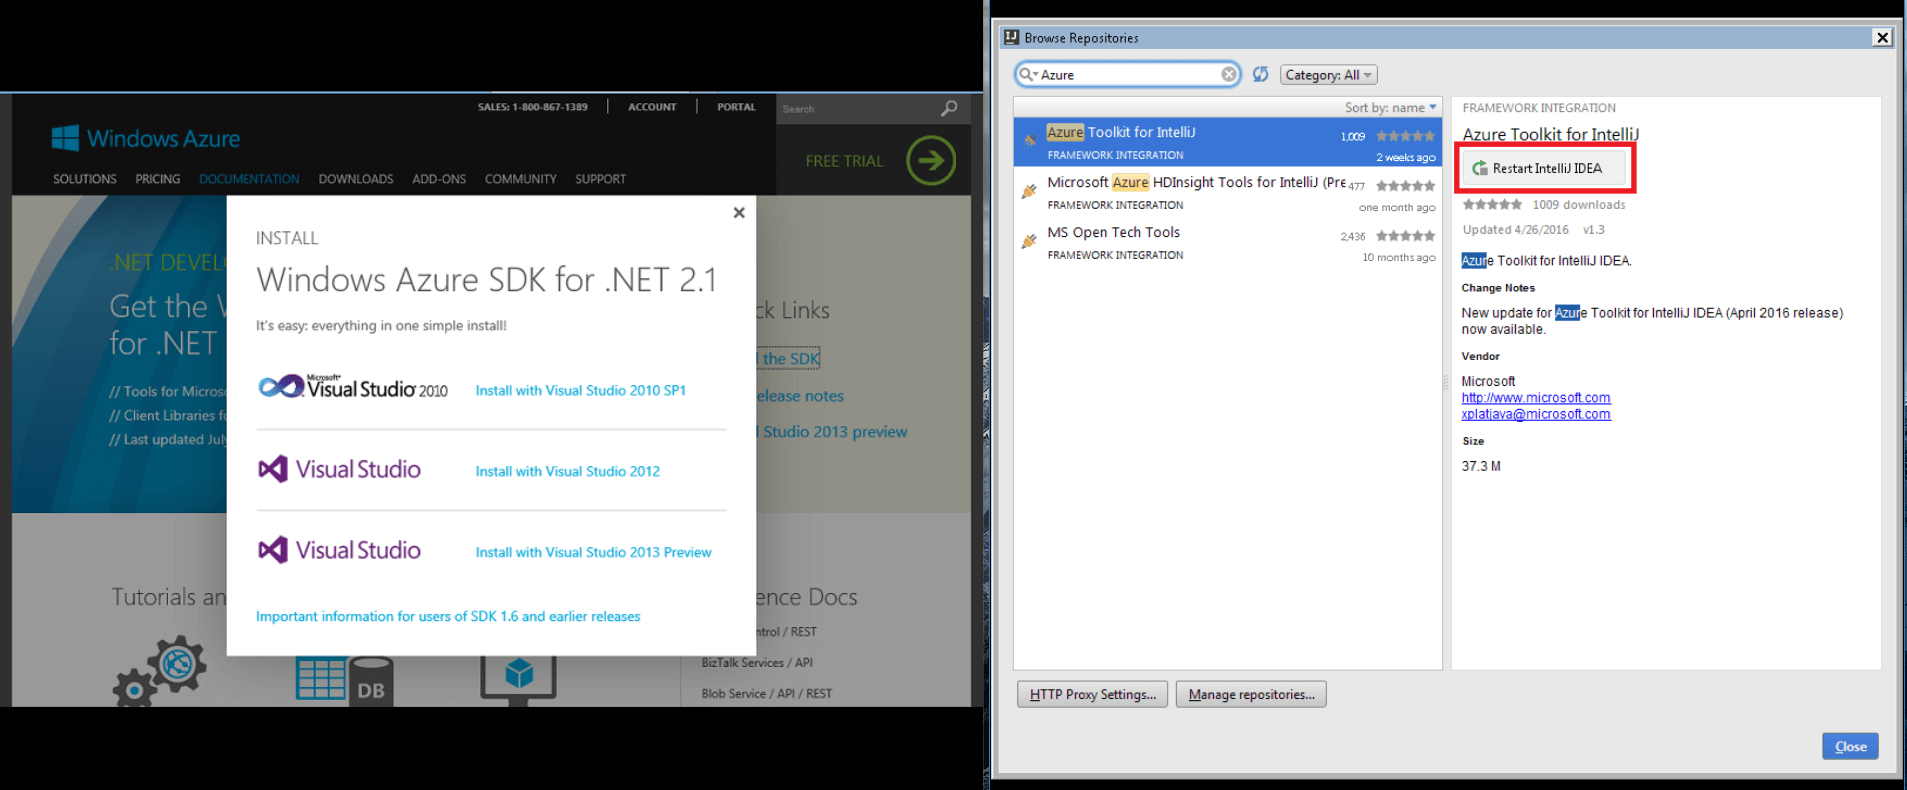 Azure App Services: 3 Limitations & 9 Awesome Features